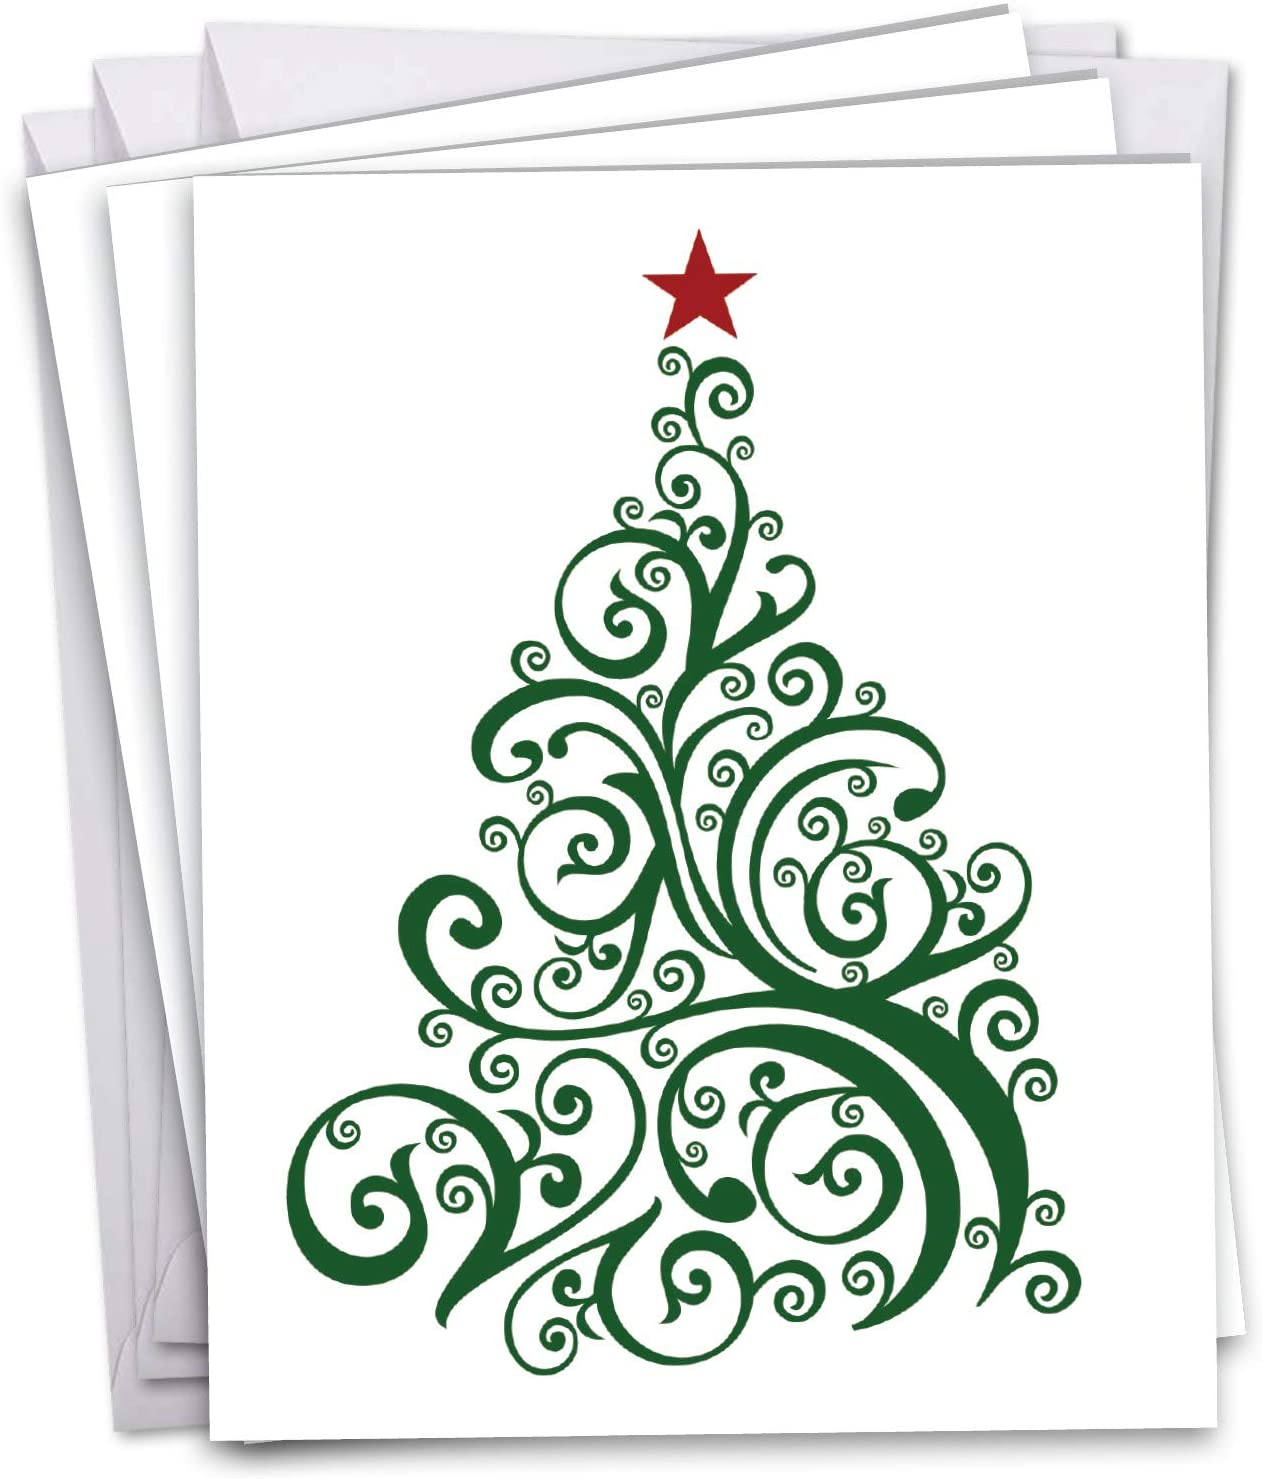 JUST FIR YOU (3 PACK) - Stylish and Elegant XL Holiday Design Appreciation Card - Merry Christmas Xmas Tree Thank You Card - Holiday Greeting Card w/Envelope 8.5 x 11 Inch J6019DXTG3